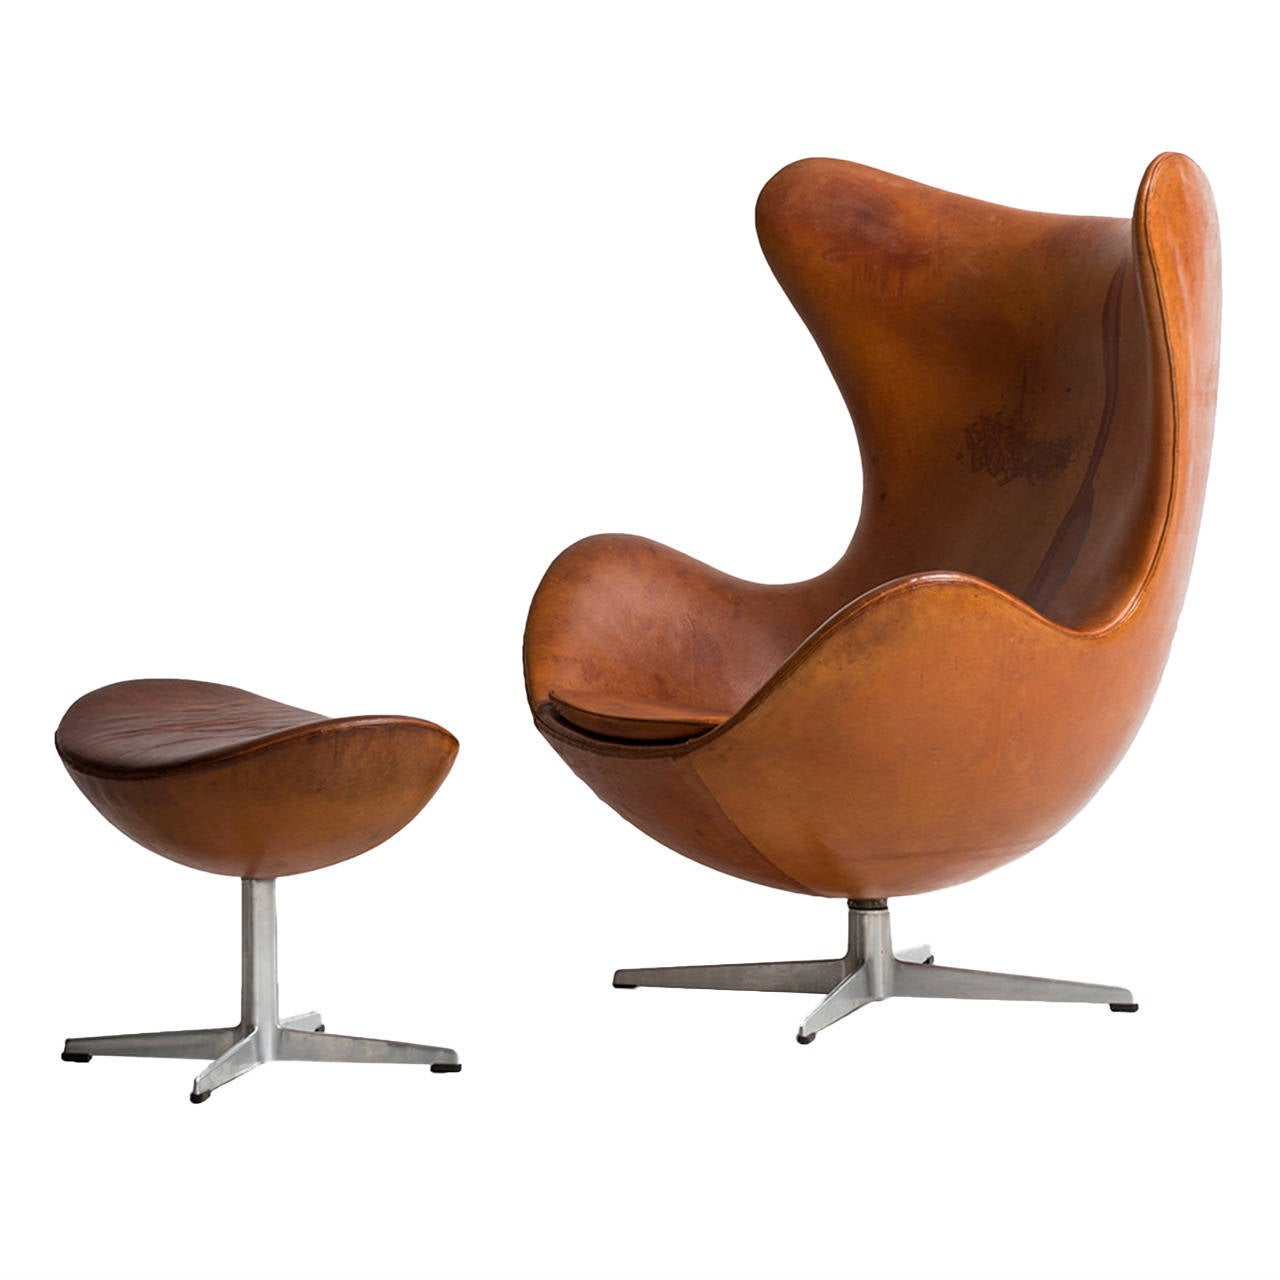 Arne Jacobsen Egg Chair in Original Cognac Brown Leather by Fritz Hansen